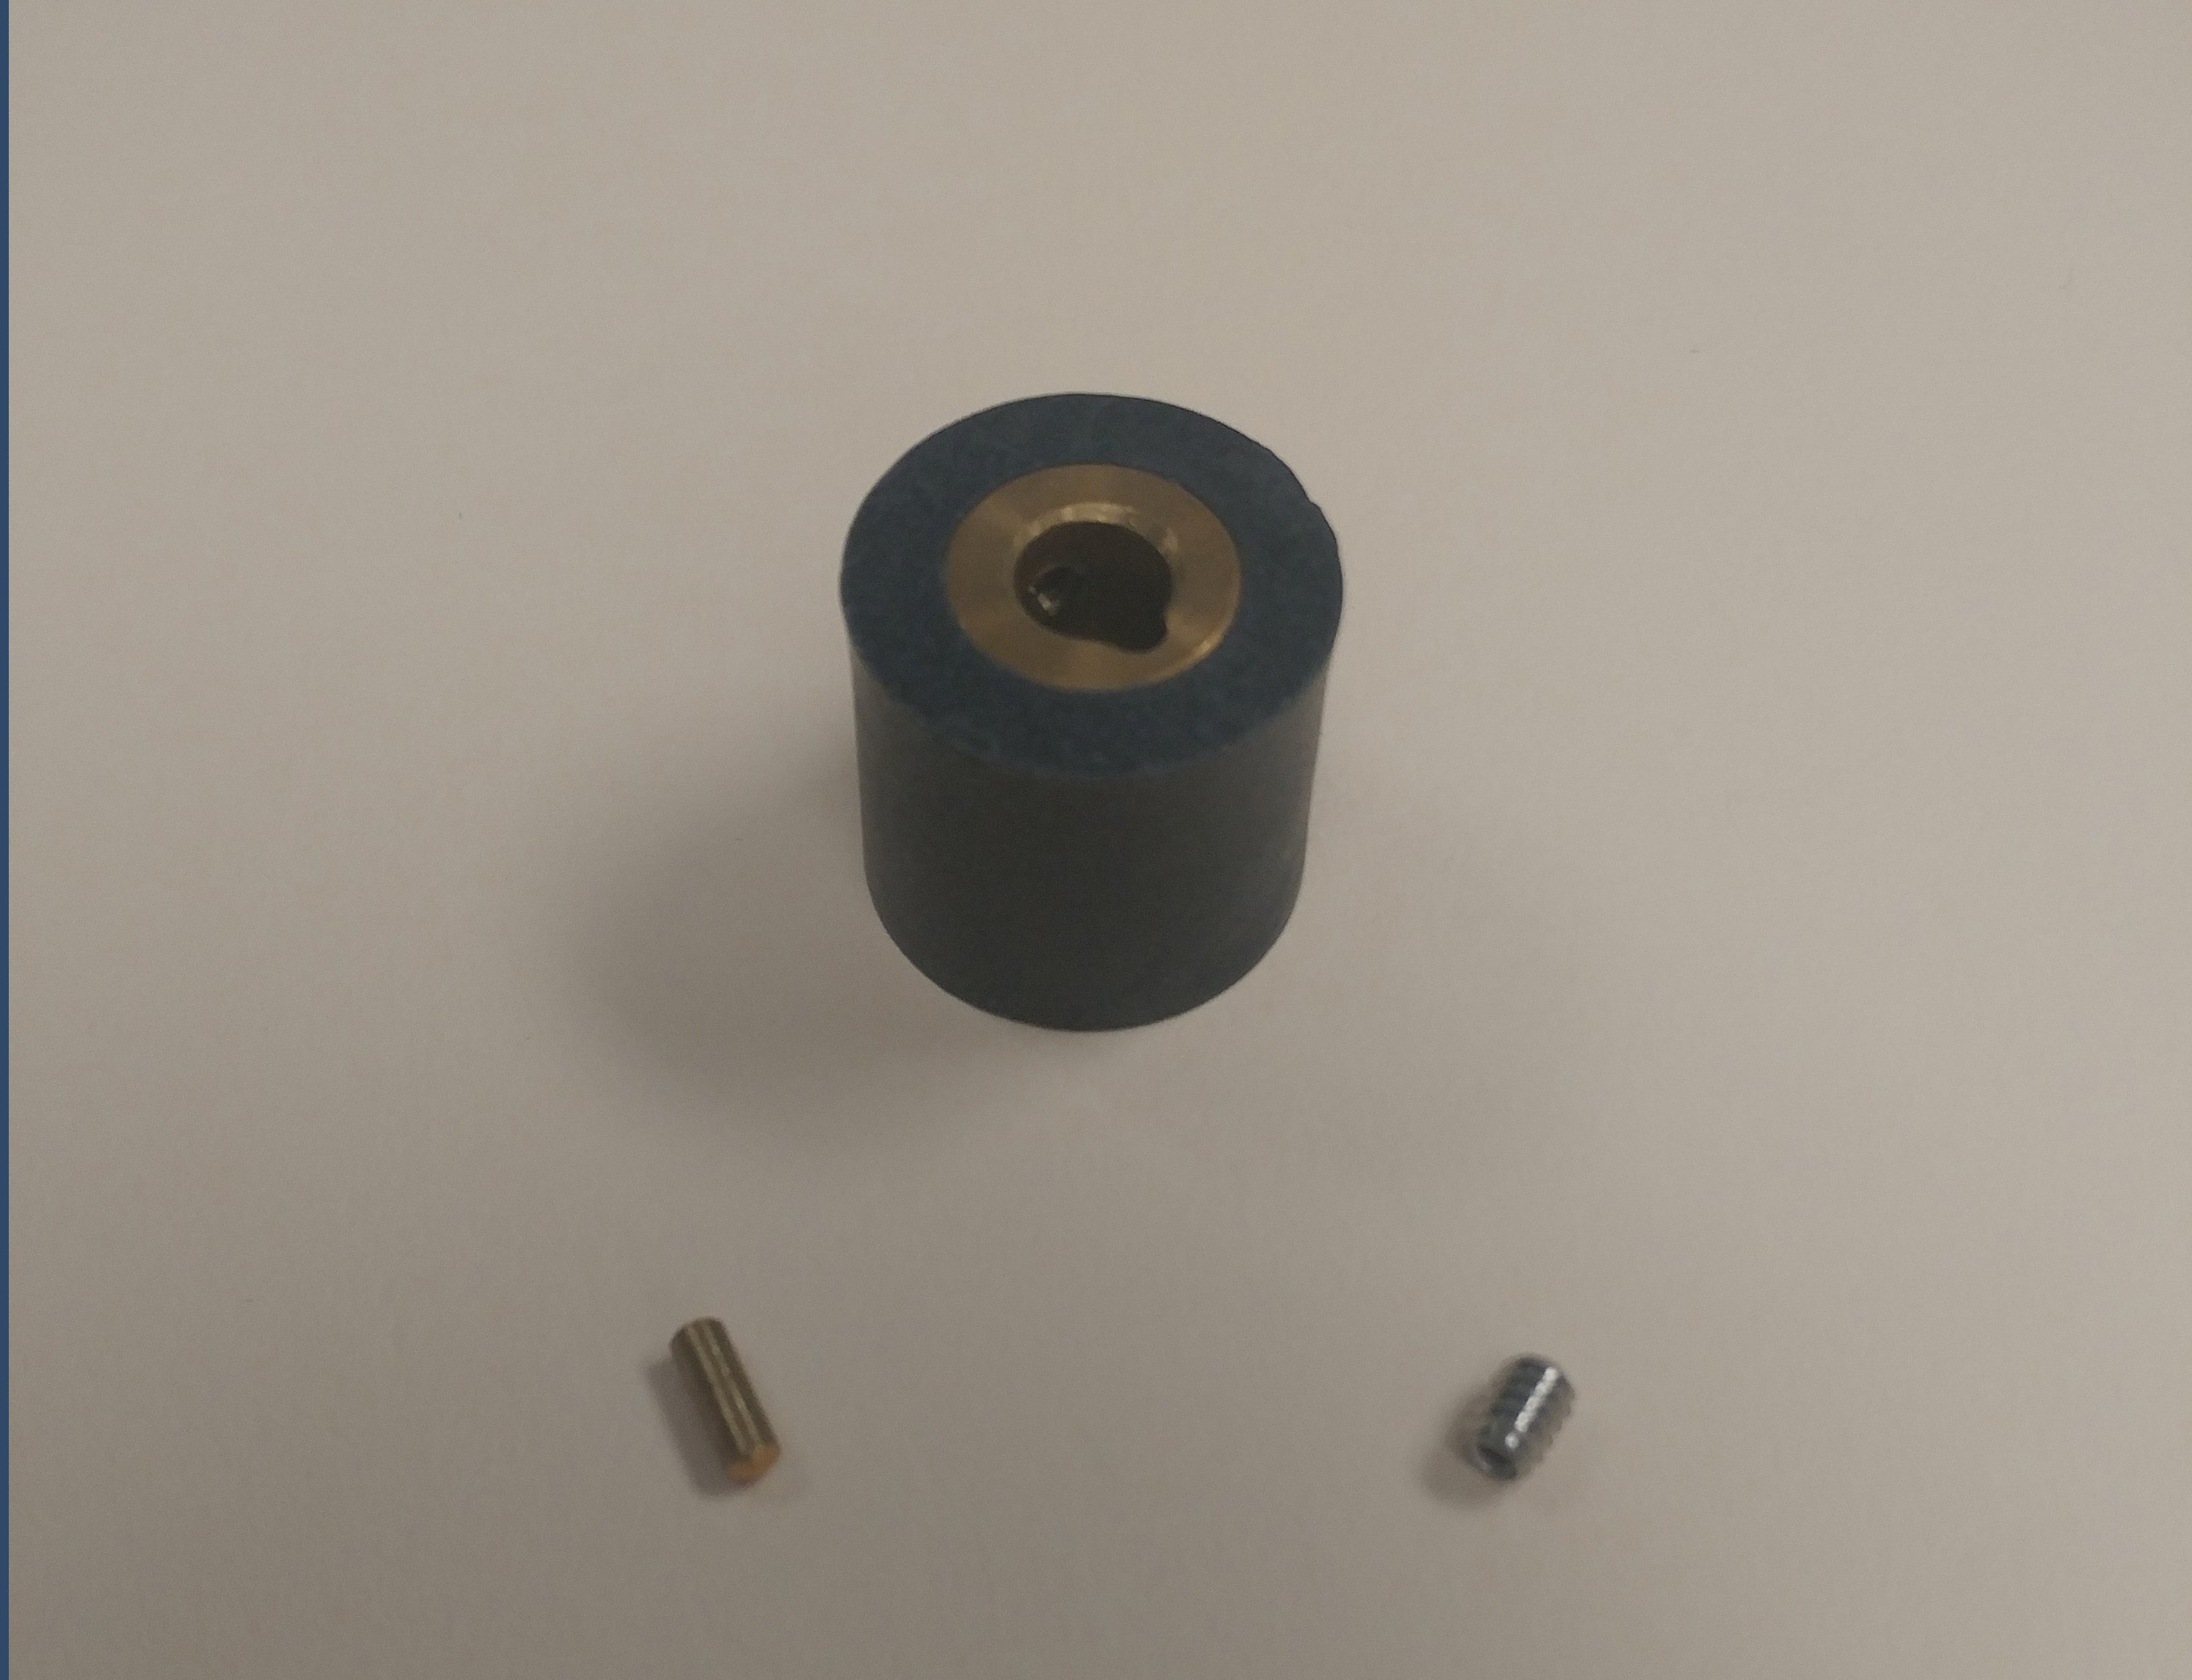 drive-nut-replacement-1.jpg